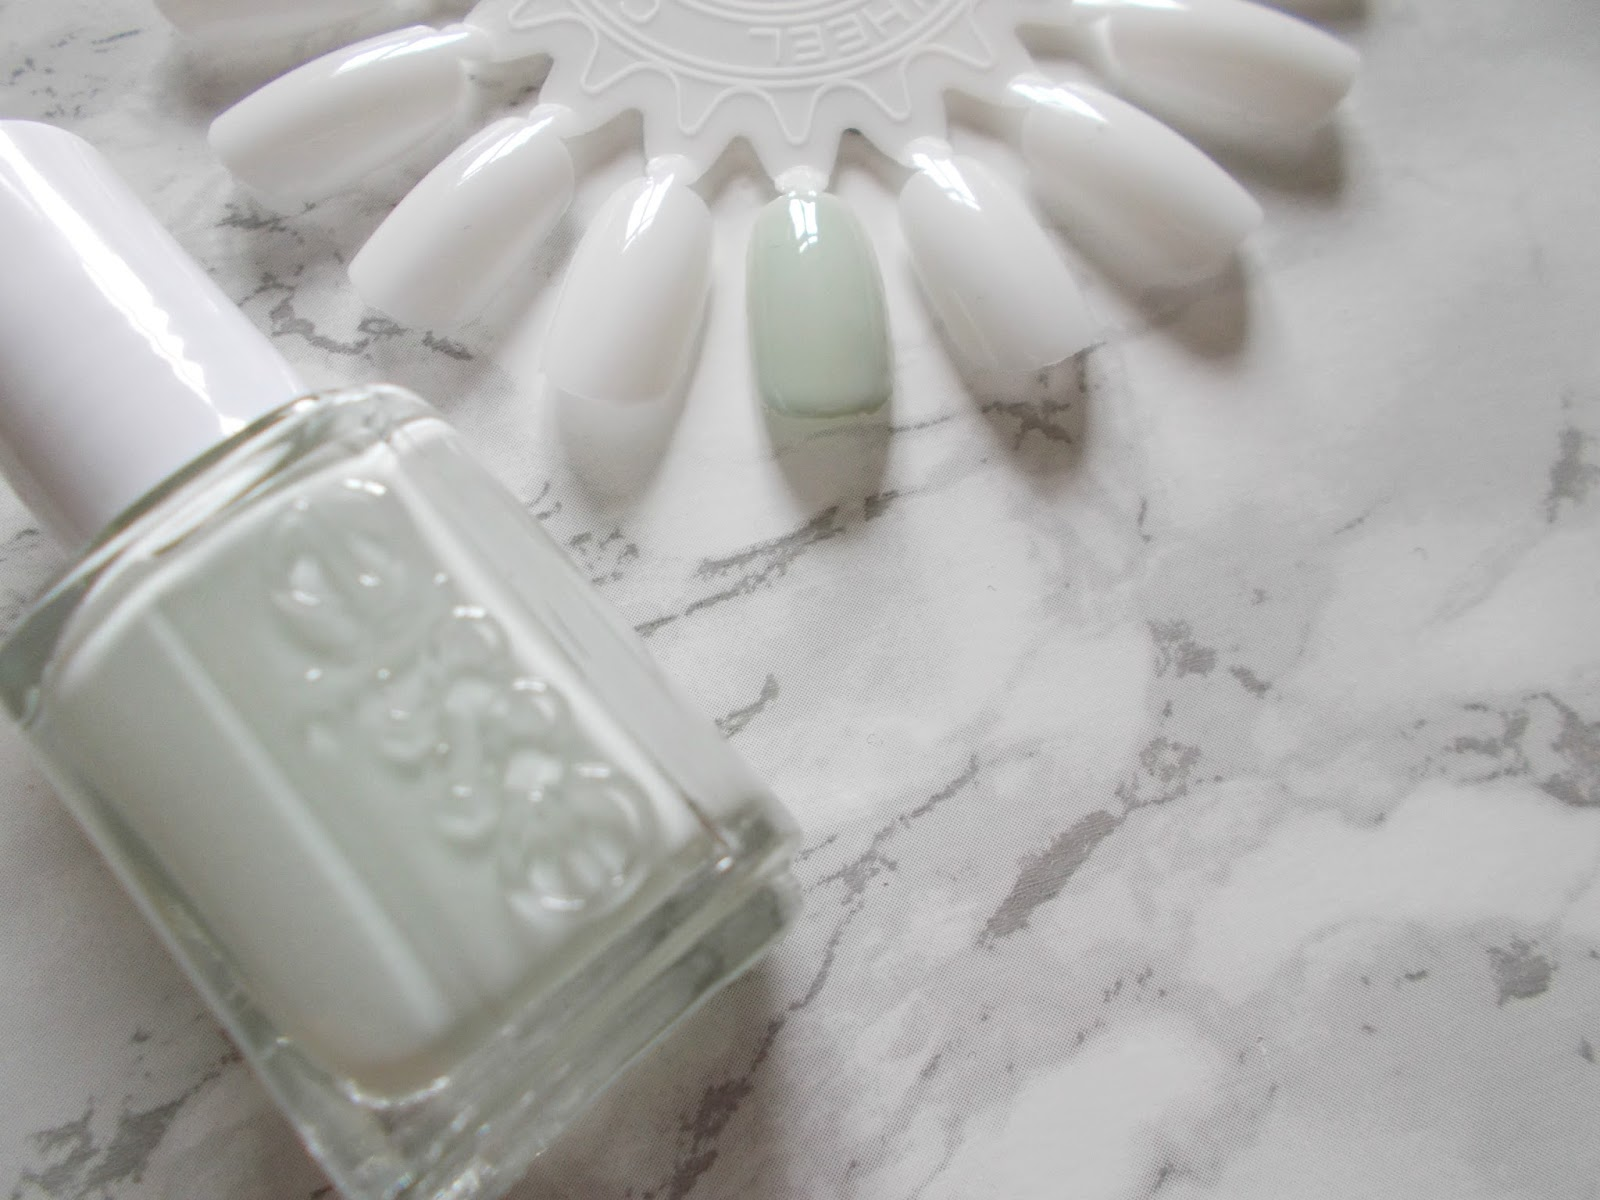 essie absolutely shore swatch pastel green nail polish